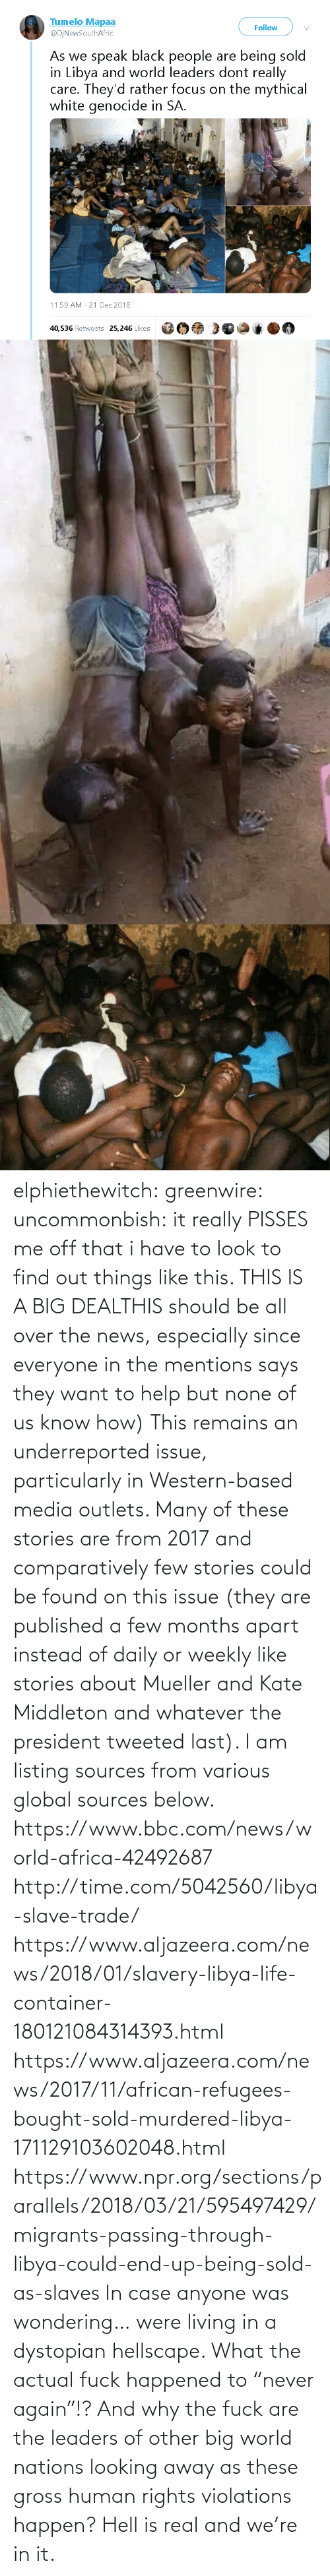 "To Find: elphiethewitch: greenwire:  uncommonbish:  it really PISSES me off that i have to look to find out things like this. THIS IS A BIG DEALTHIS should be all over the news, especially since everyone in the mentions says they want to help but none of us know how)  This remains an underreported issue, particularly in Western-based media outlets. Many of these stories are from 2017 and comparatively few stories could be found on this issue (they are published a few months apart instead of daily or weekly like stories about Mueller and Kate Middleton and whatever the president tweeted last). I am listing sources from various global sources below.  https://www.bbc.com/news/world-africa-42492687 http://time.com/5042560/libya-slave-trade/ https://www.aljazeera.com/news/2018/01/slavery-libya-life-container-180121084314393.html https://www.aljazeera.com/news/2017/11/african-refugees-bought-sold-murdered-libya-171129103602048.html https://www.npr.org/sections/parallels/2018/03/21/595497429/migrants-passing-through-libya-could-end-up-being-sold-as-slaves   In case anyone was wondering… were living in a dystopian hellscape.  What the actual fuck happened to ""never again""!? And why the fuck are the leaders of other big world nations looking away as these gross human rights violations happen?  Hell is real and we're in it."